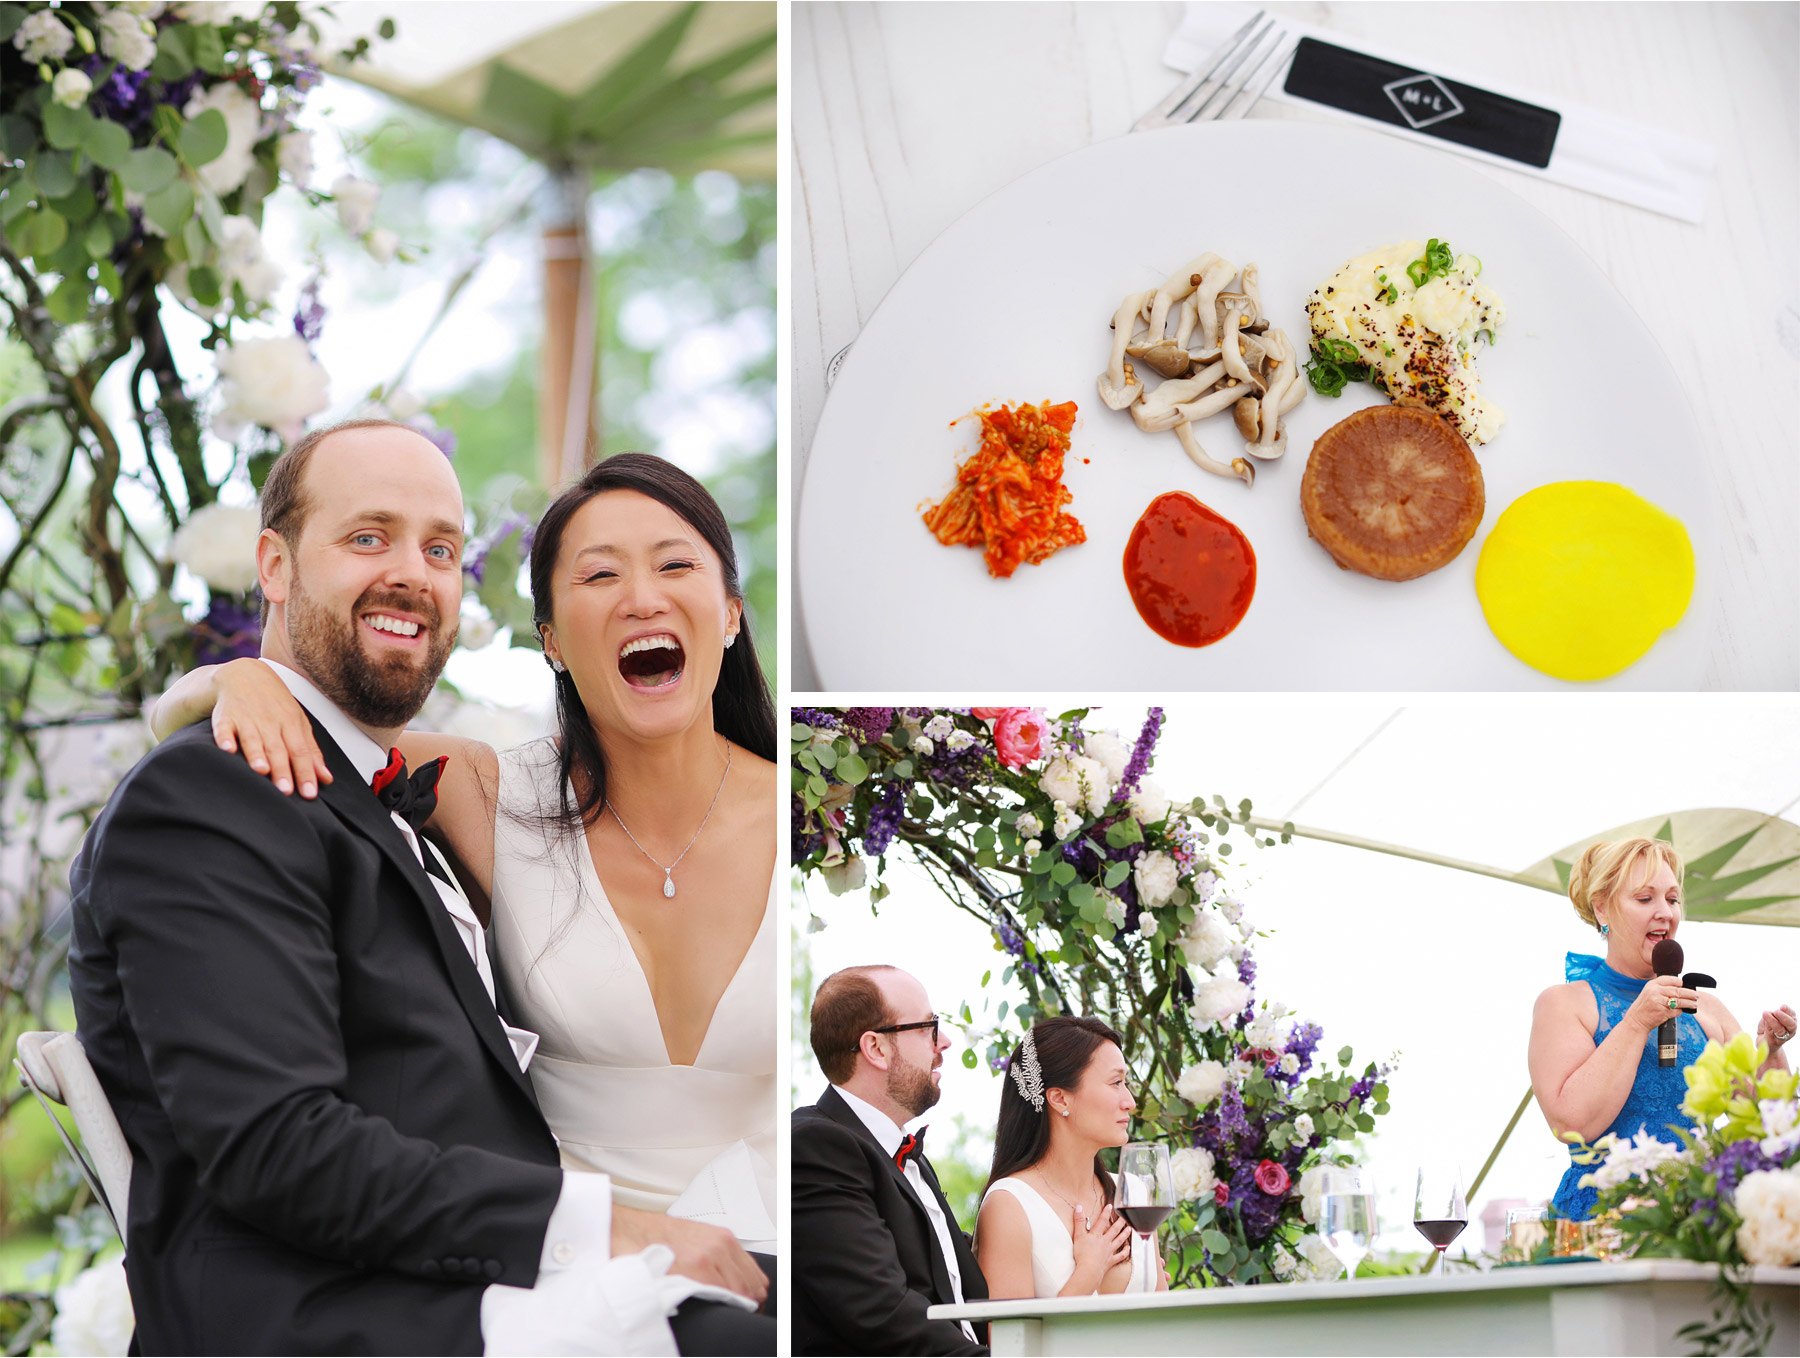 20-Vick-Photography-Wedding-Stouts-Island-Lodge-Wisconsin-Summer-Reception-Outdoor-Toast-Laughing-Food-MiJa-and-Lucius.jpg